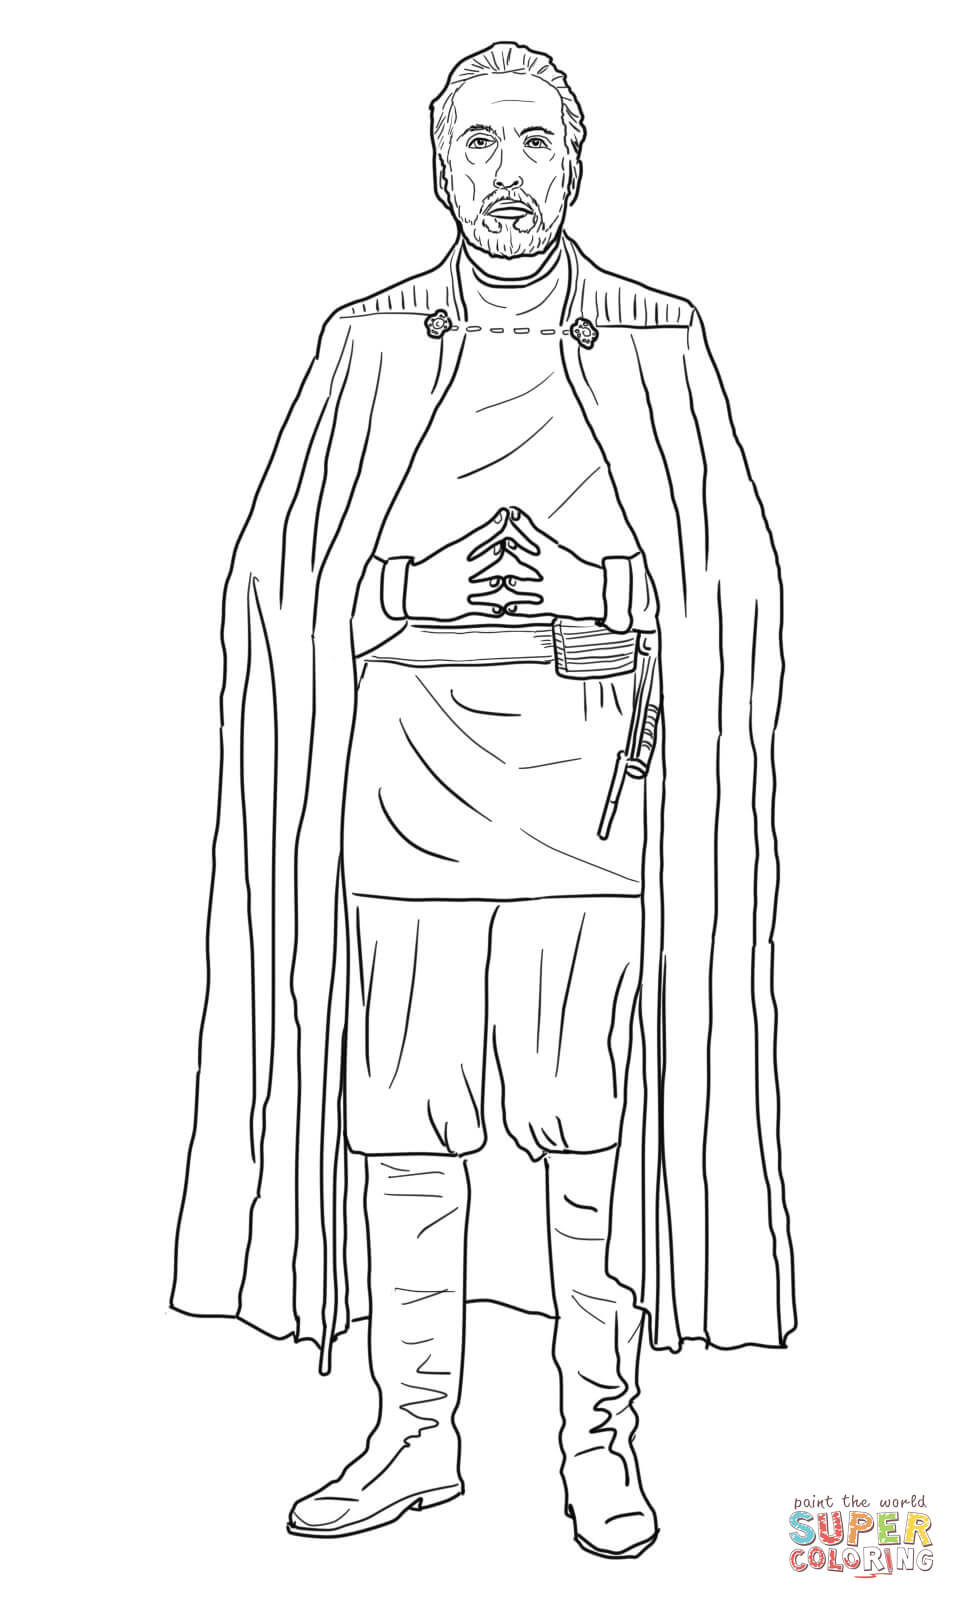 Lego Star Wars Count Dooku Coloring Pages Coloring Pages